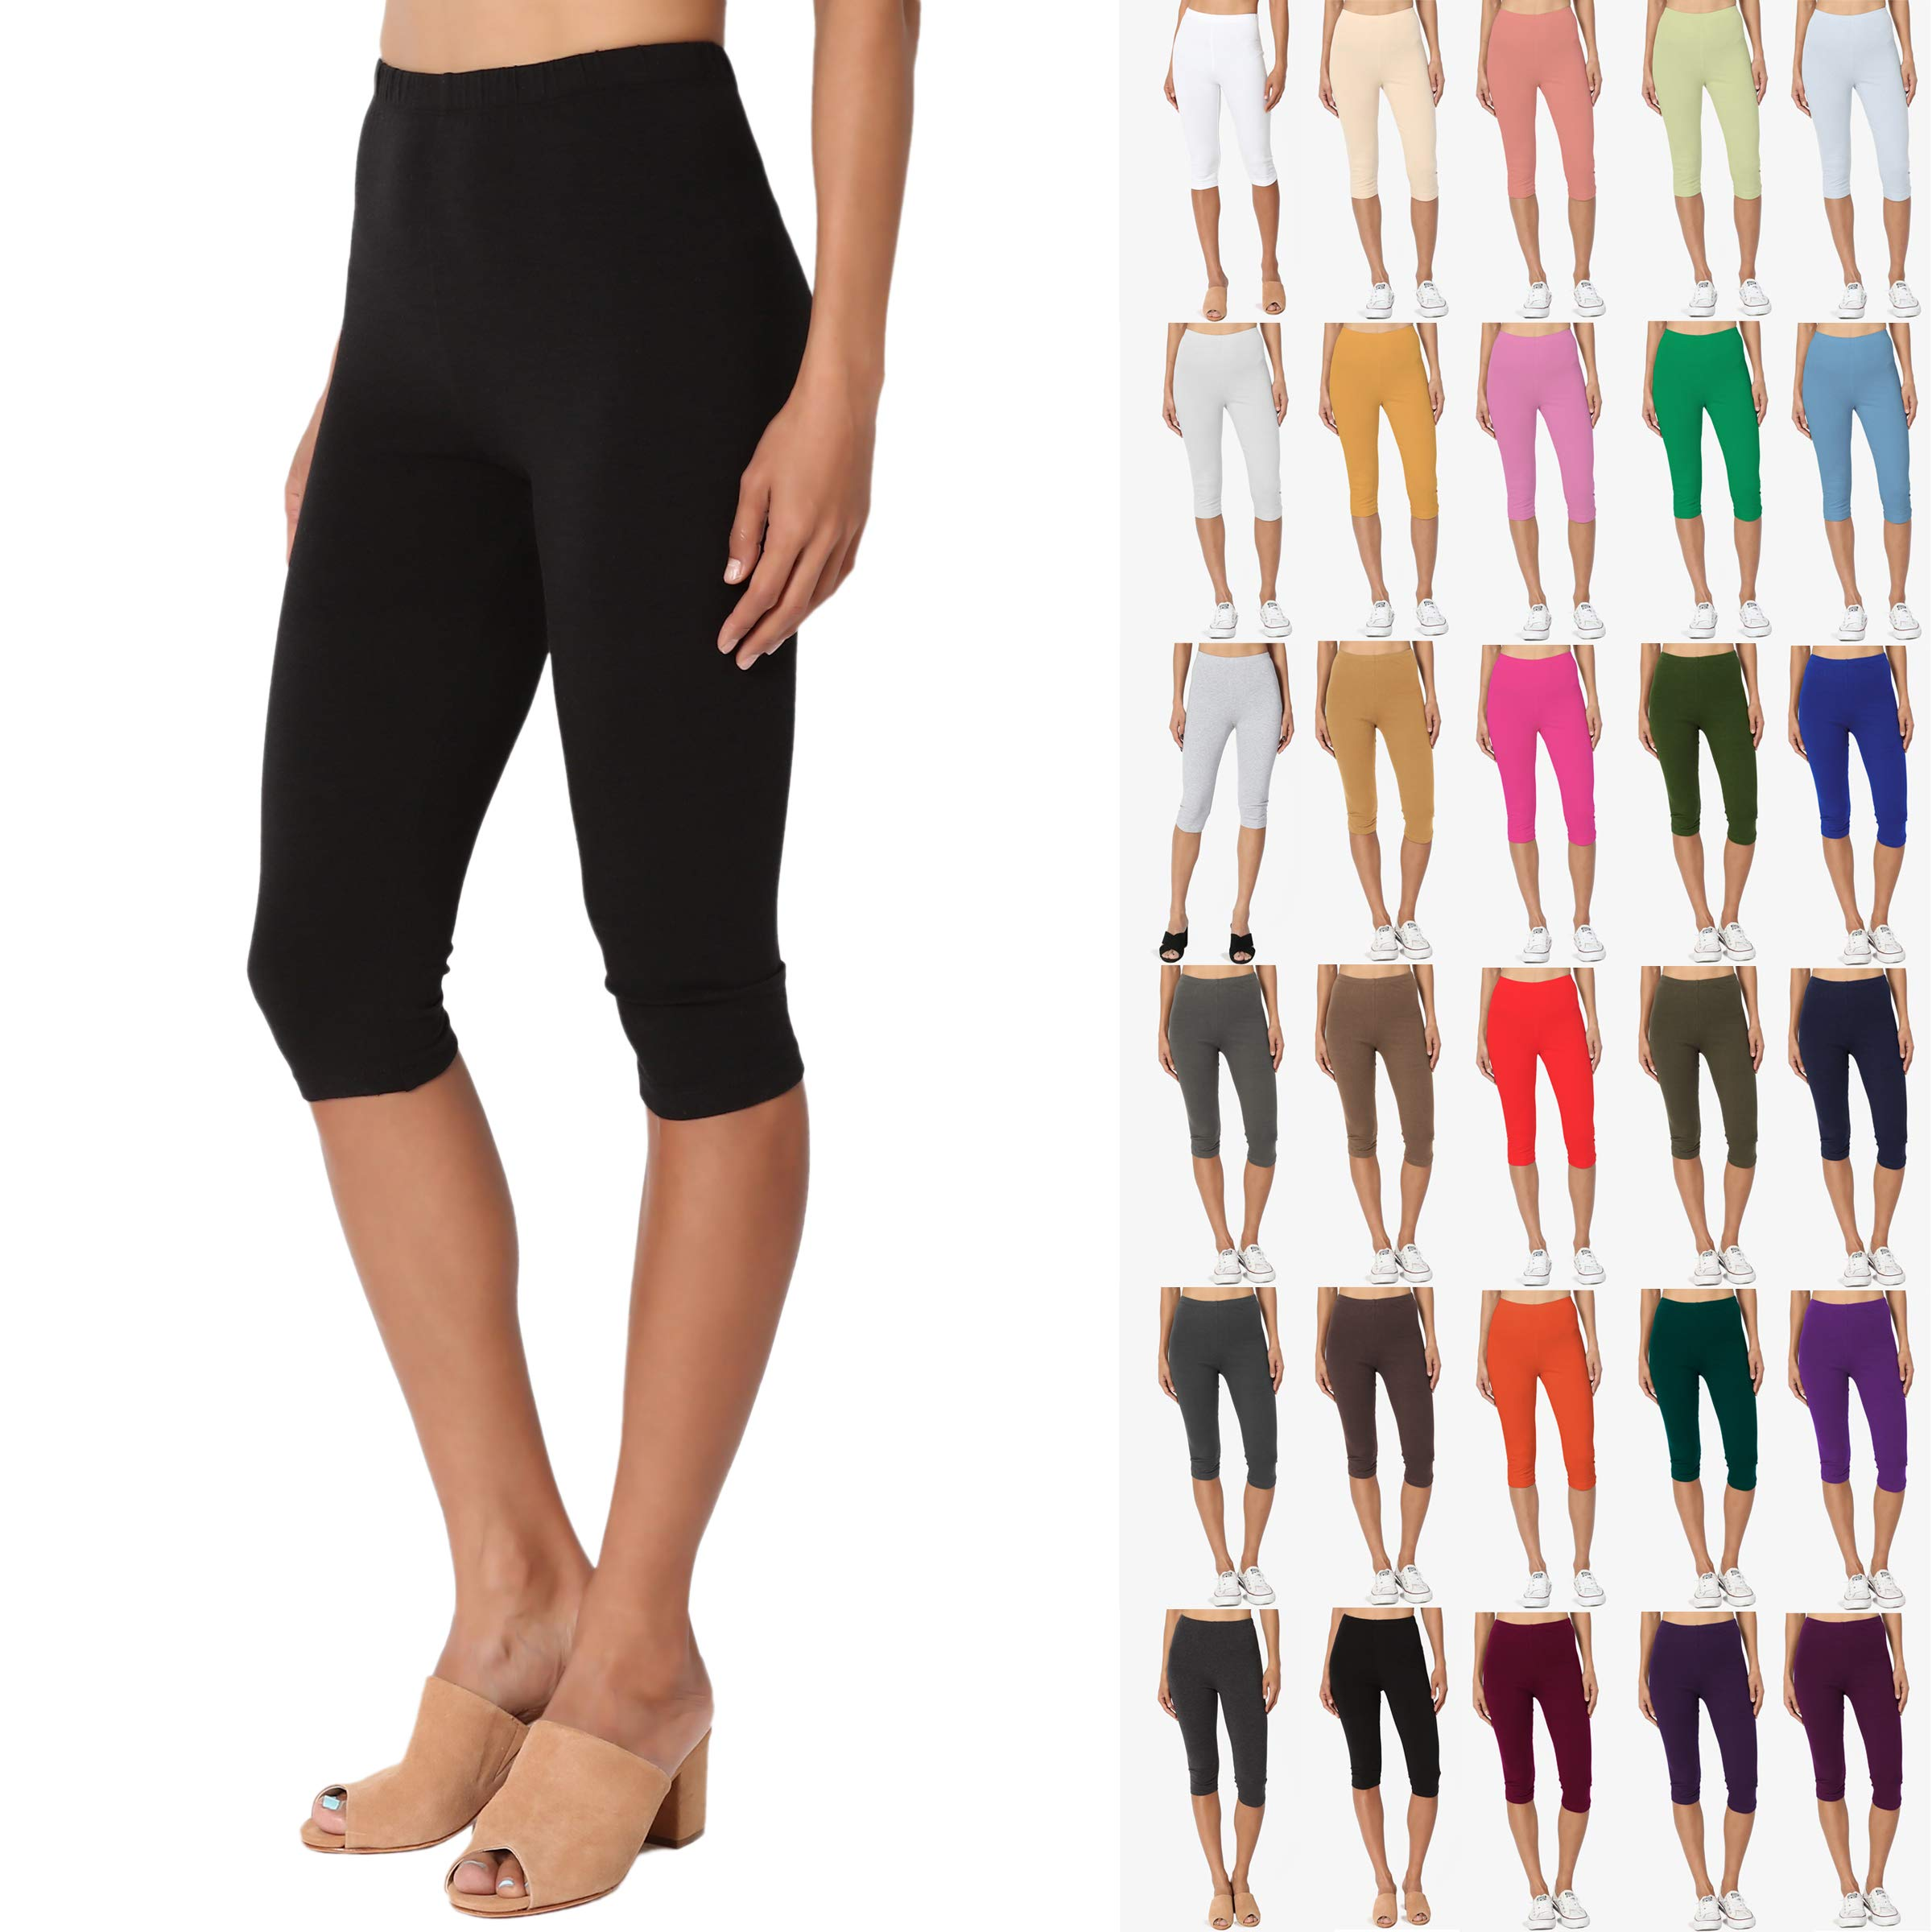 771bc4c93b2d5f TheMogan Essential Basic Cotton Spandex Stretch Below Knee Length Capri  Leggings < Leggings < Clothing, Shoes & Jewelry - tibs